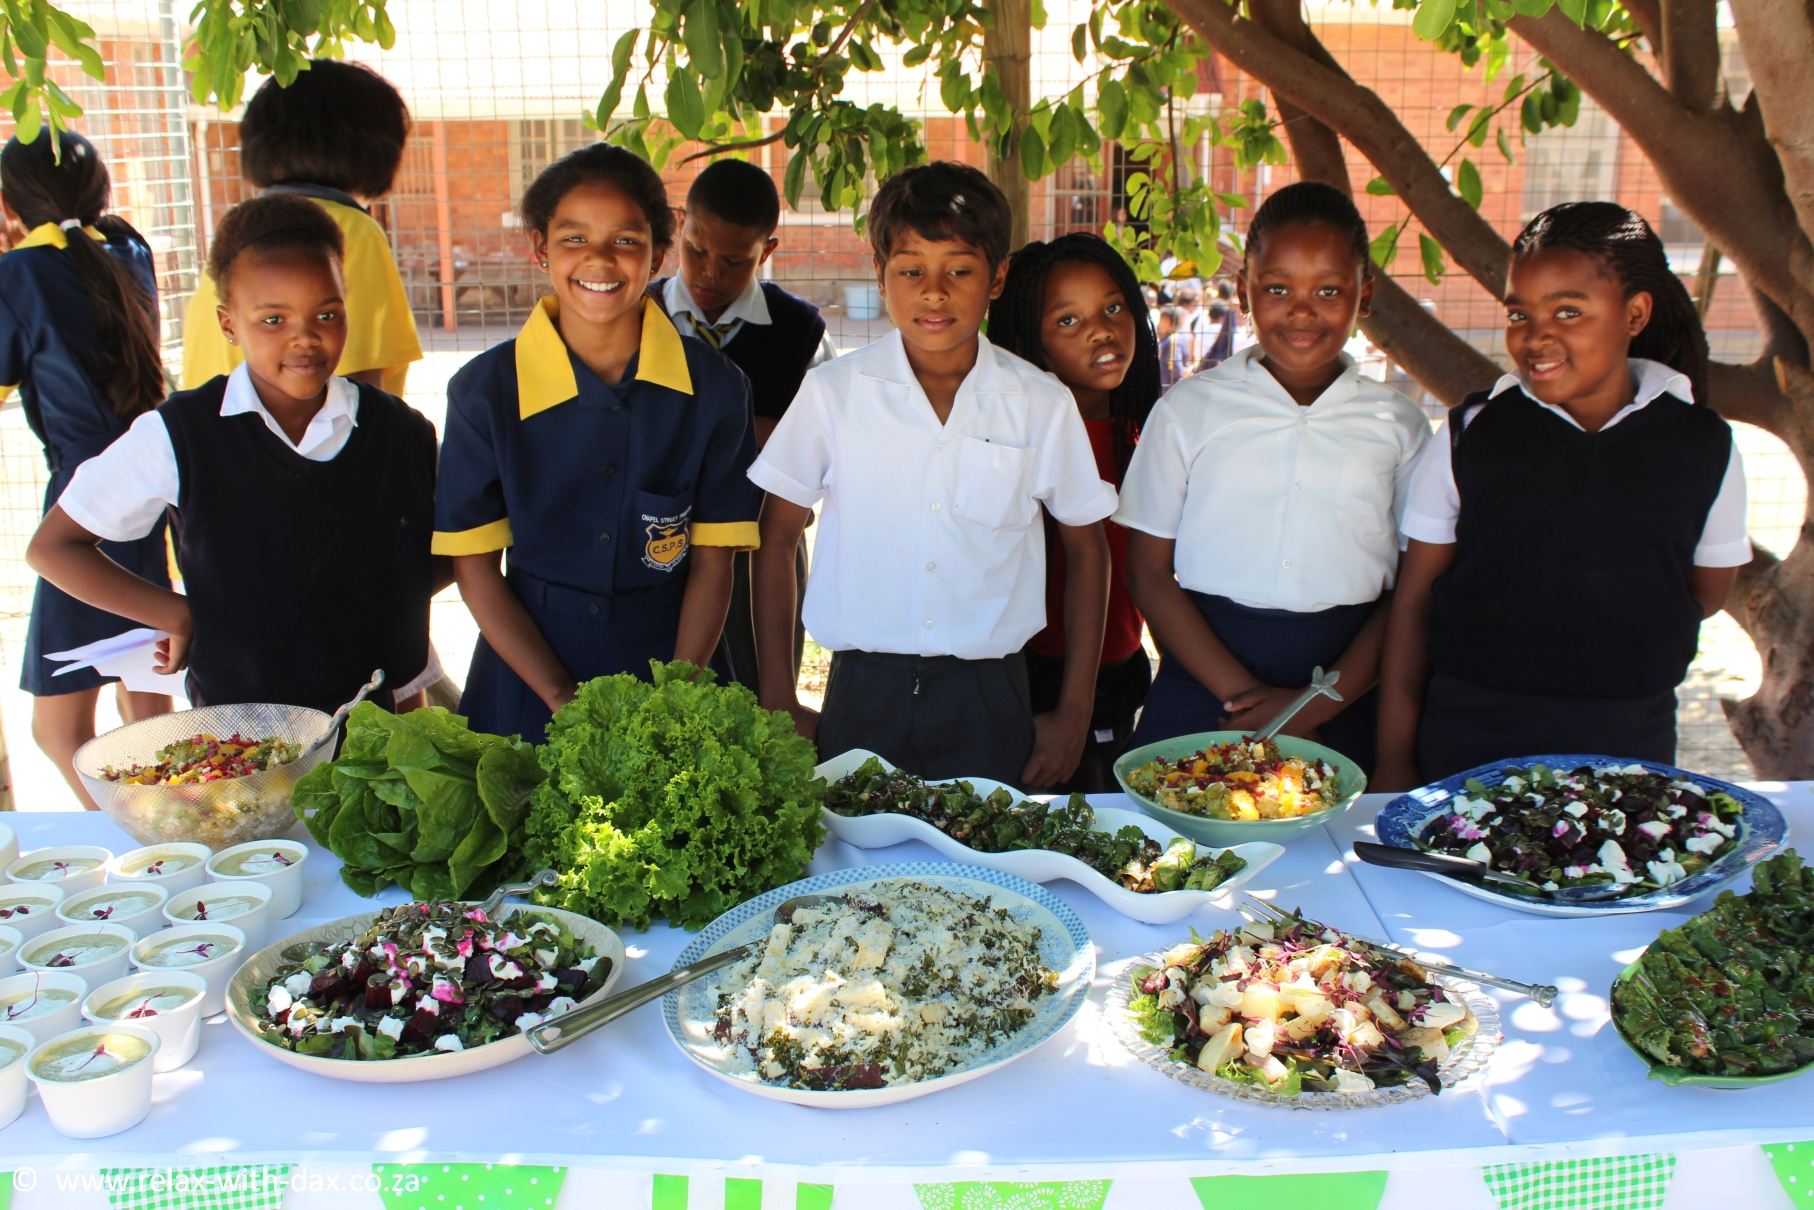 Myschool edible garden harvest table